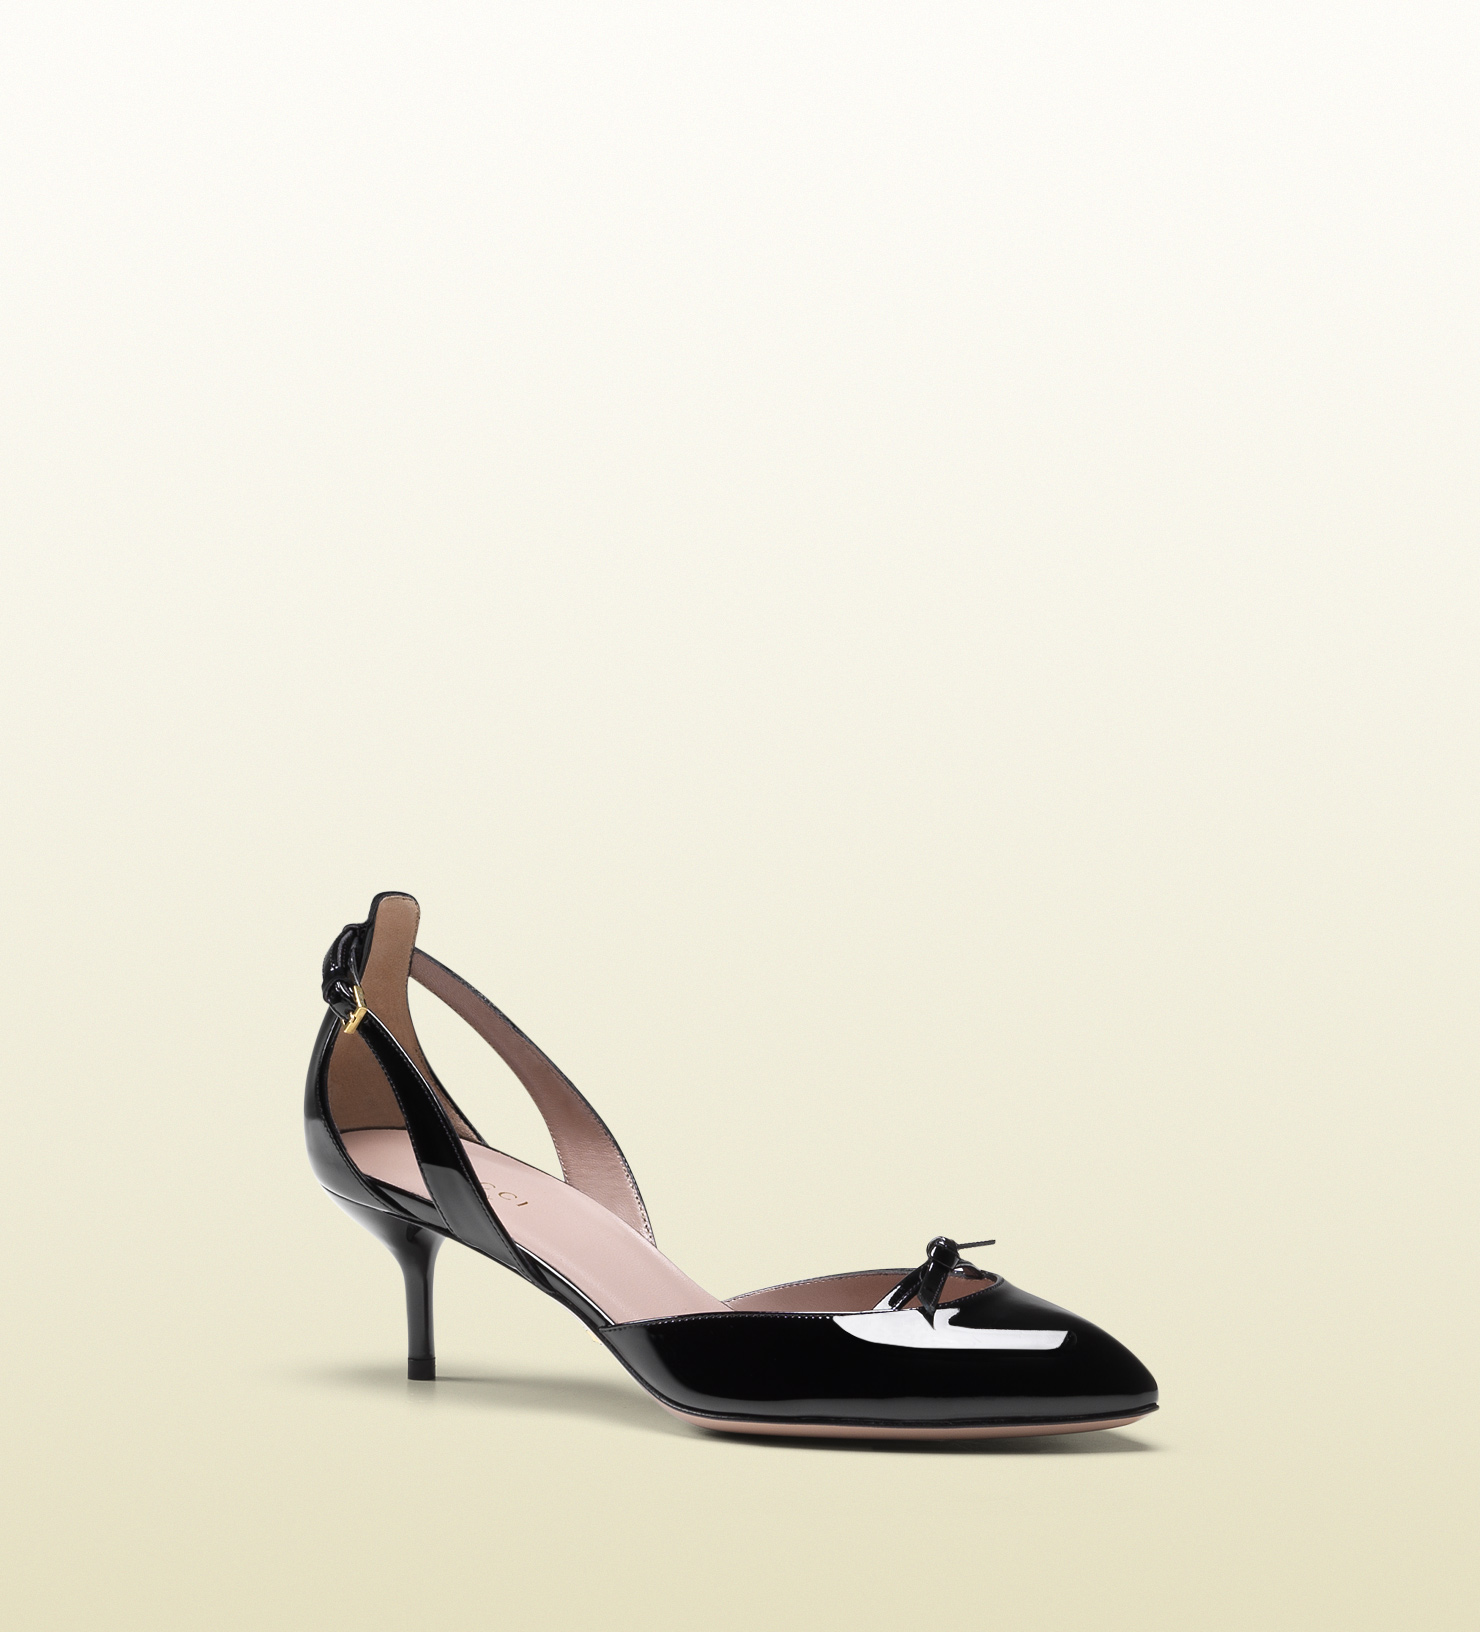 Gucci Black Patent Leather Mid-heel Pump In Black